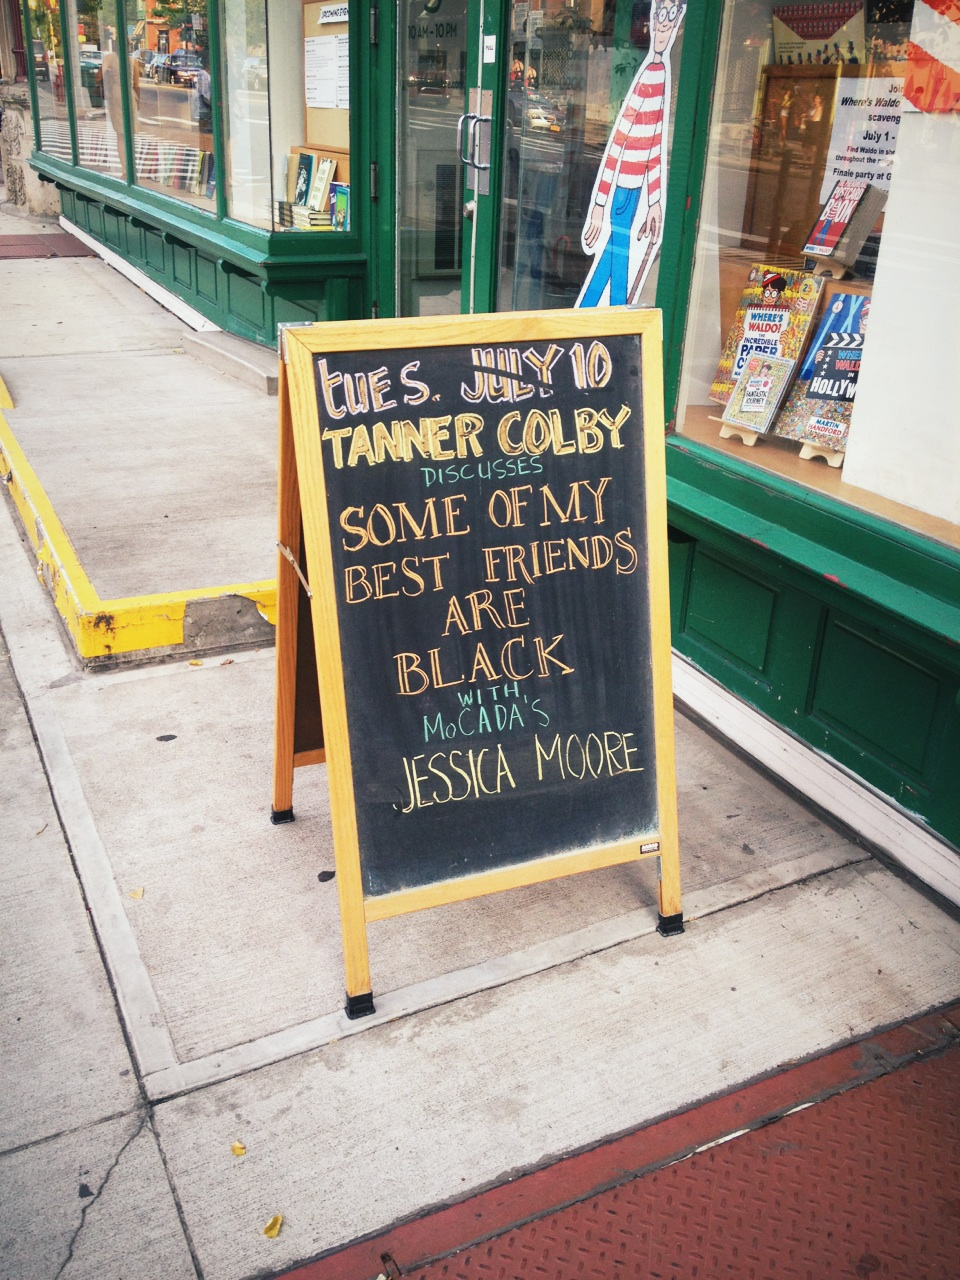 Here for @TannerColby book event: Some Of My Best Friends Are Black http://blackte.am/blackfriends at Greenlight Bookstore